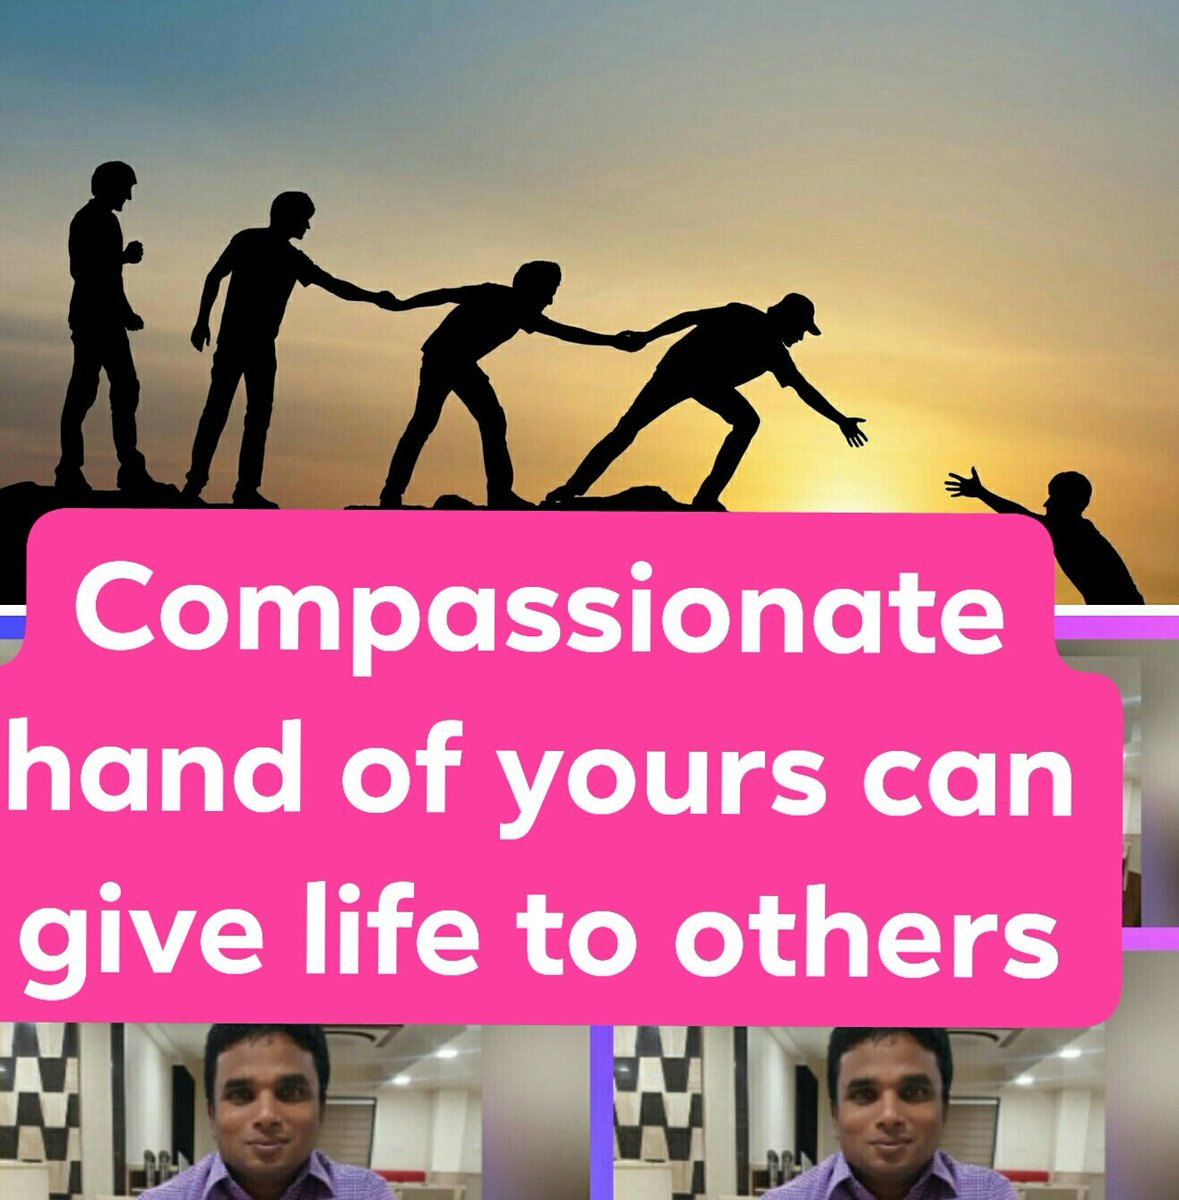 #compassion #hands #life #harmony #JaiHind https://t.co/Wj0g5JkxW6